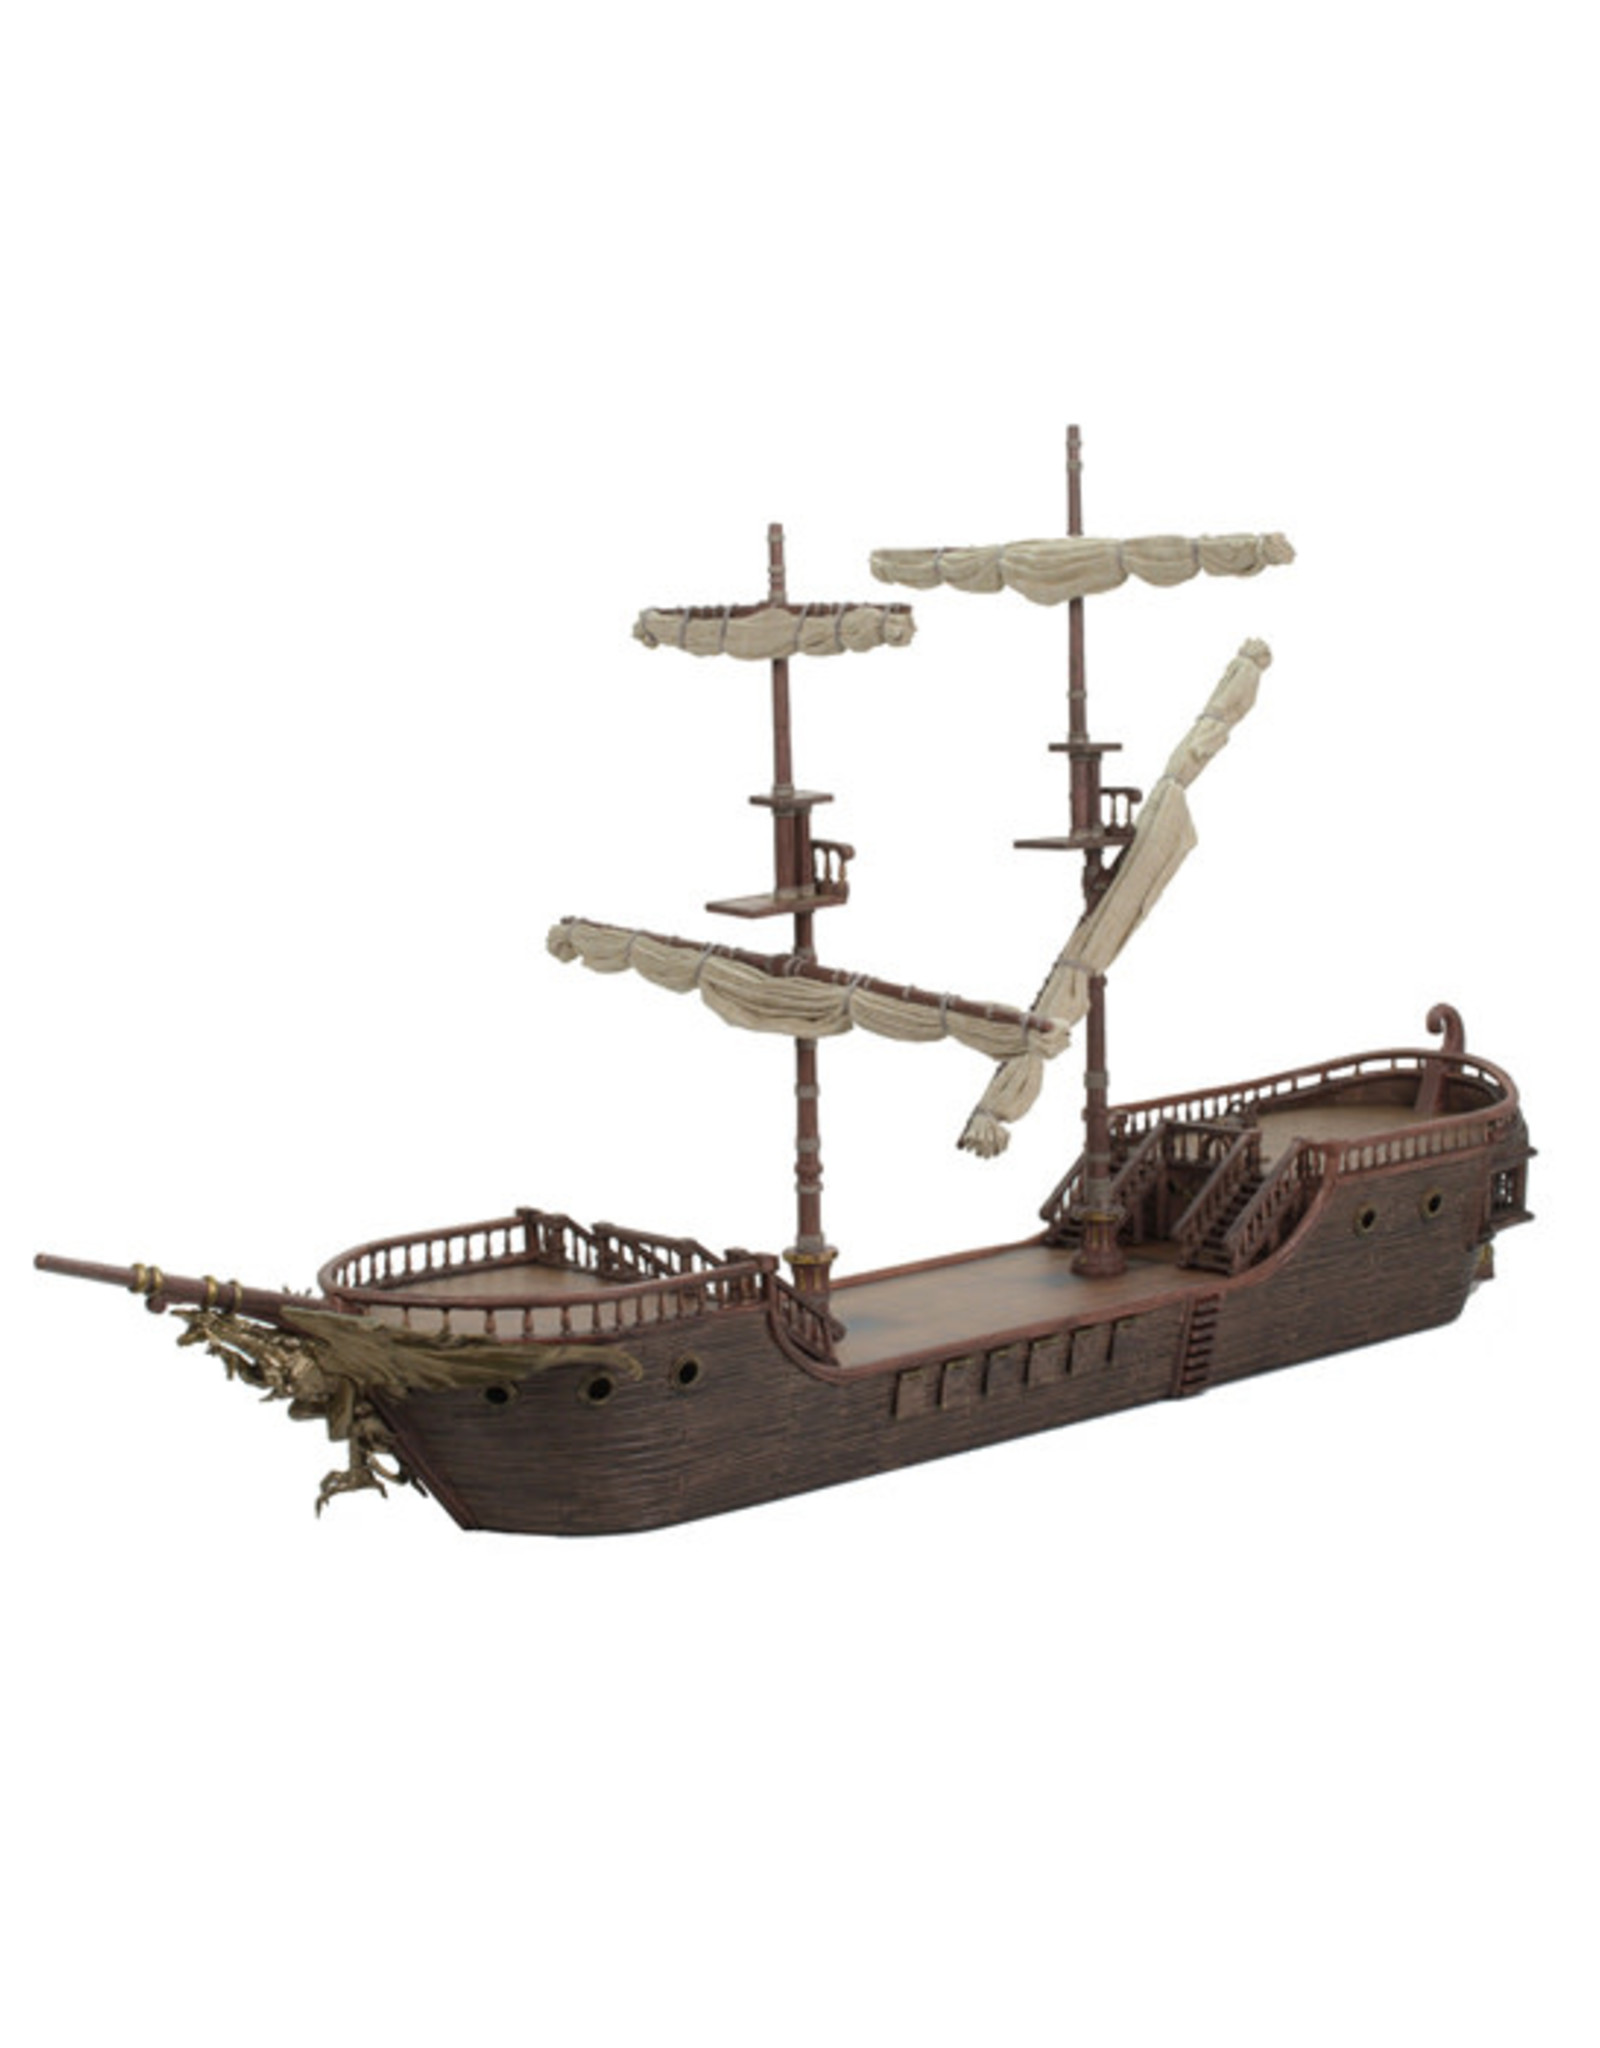 Dungeons & Dragons Dungeons & Dragons: Icons of the Realms - The Falling Star Sail Ship